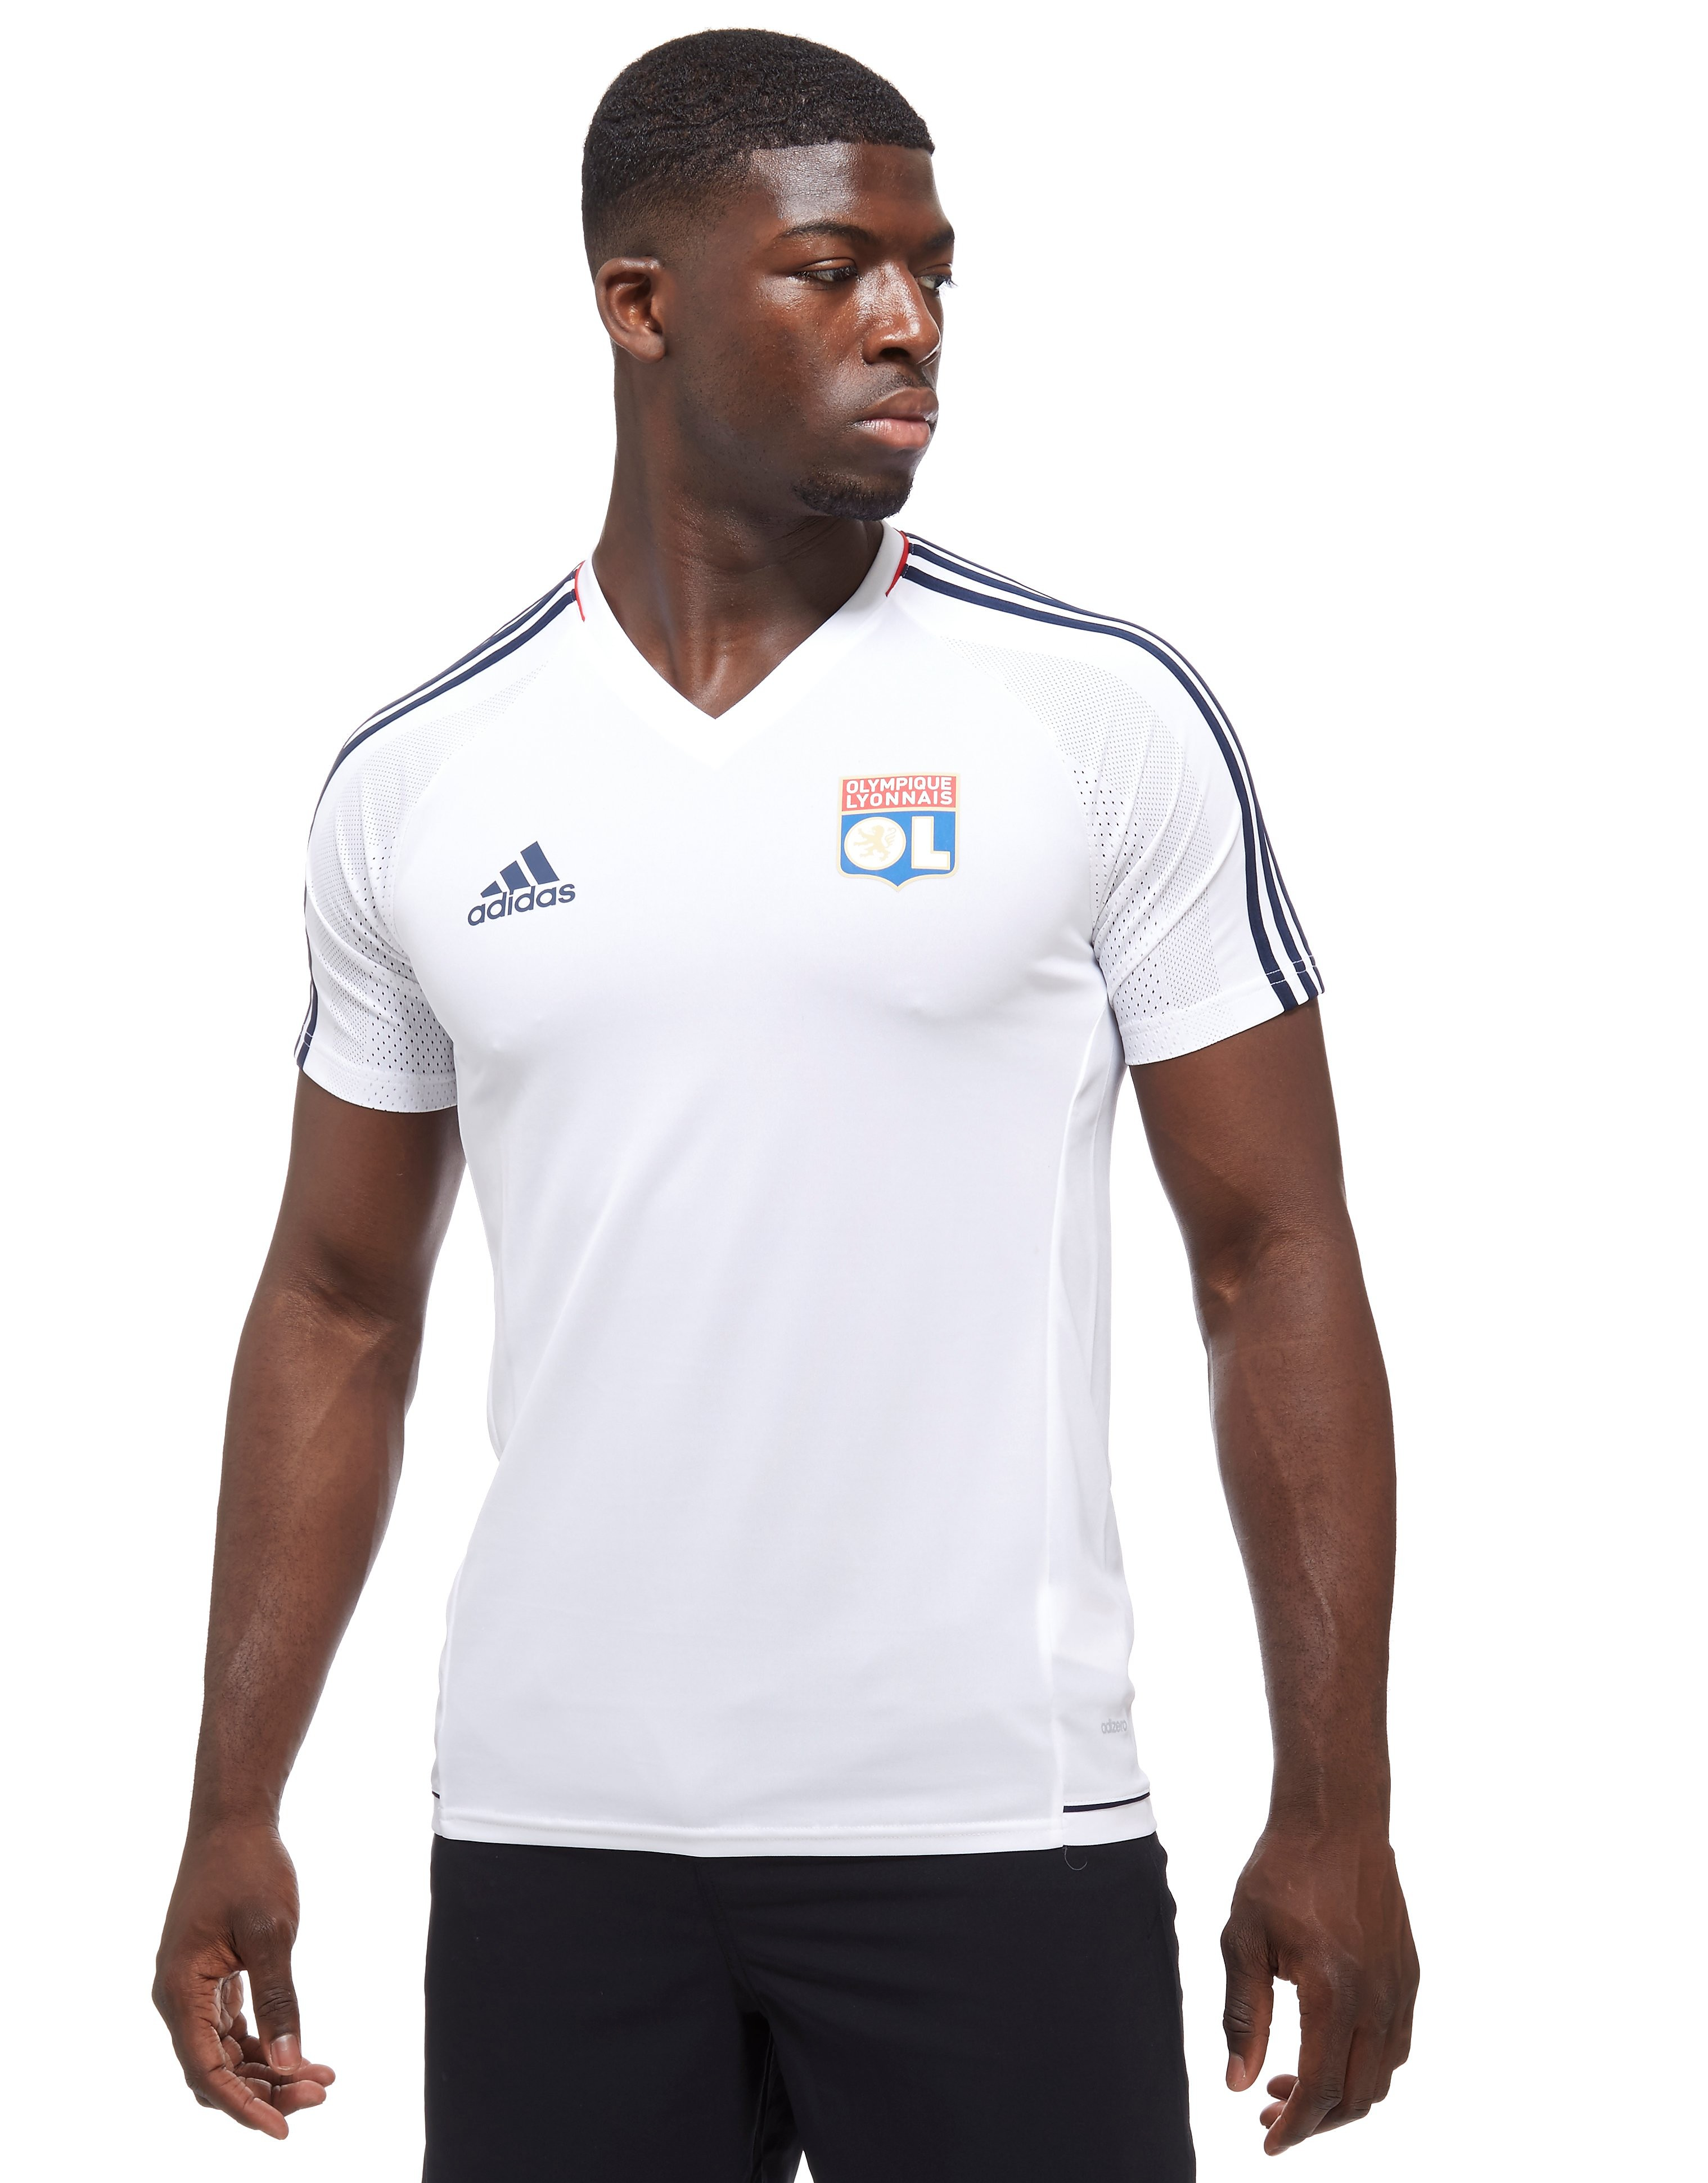 adidas Olympique Lyon 2017 Training Shirt